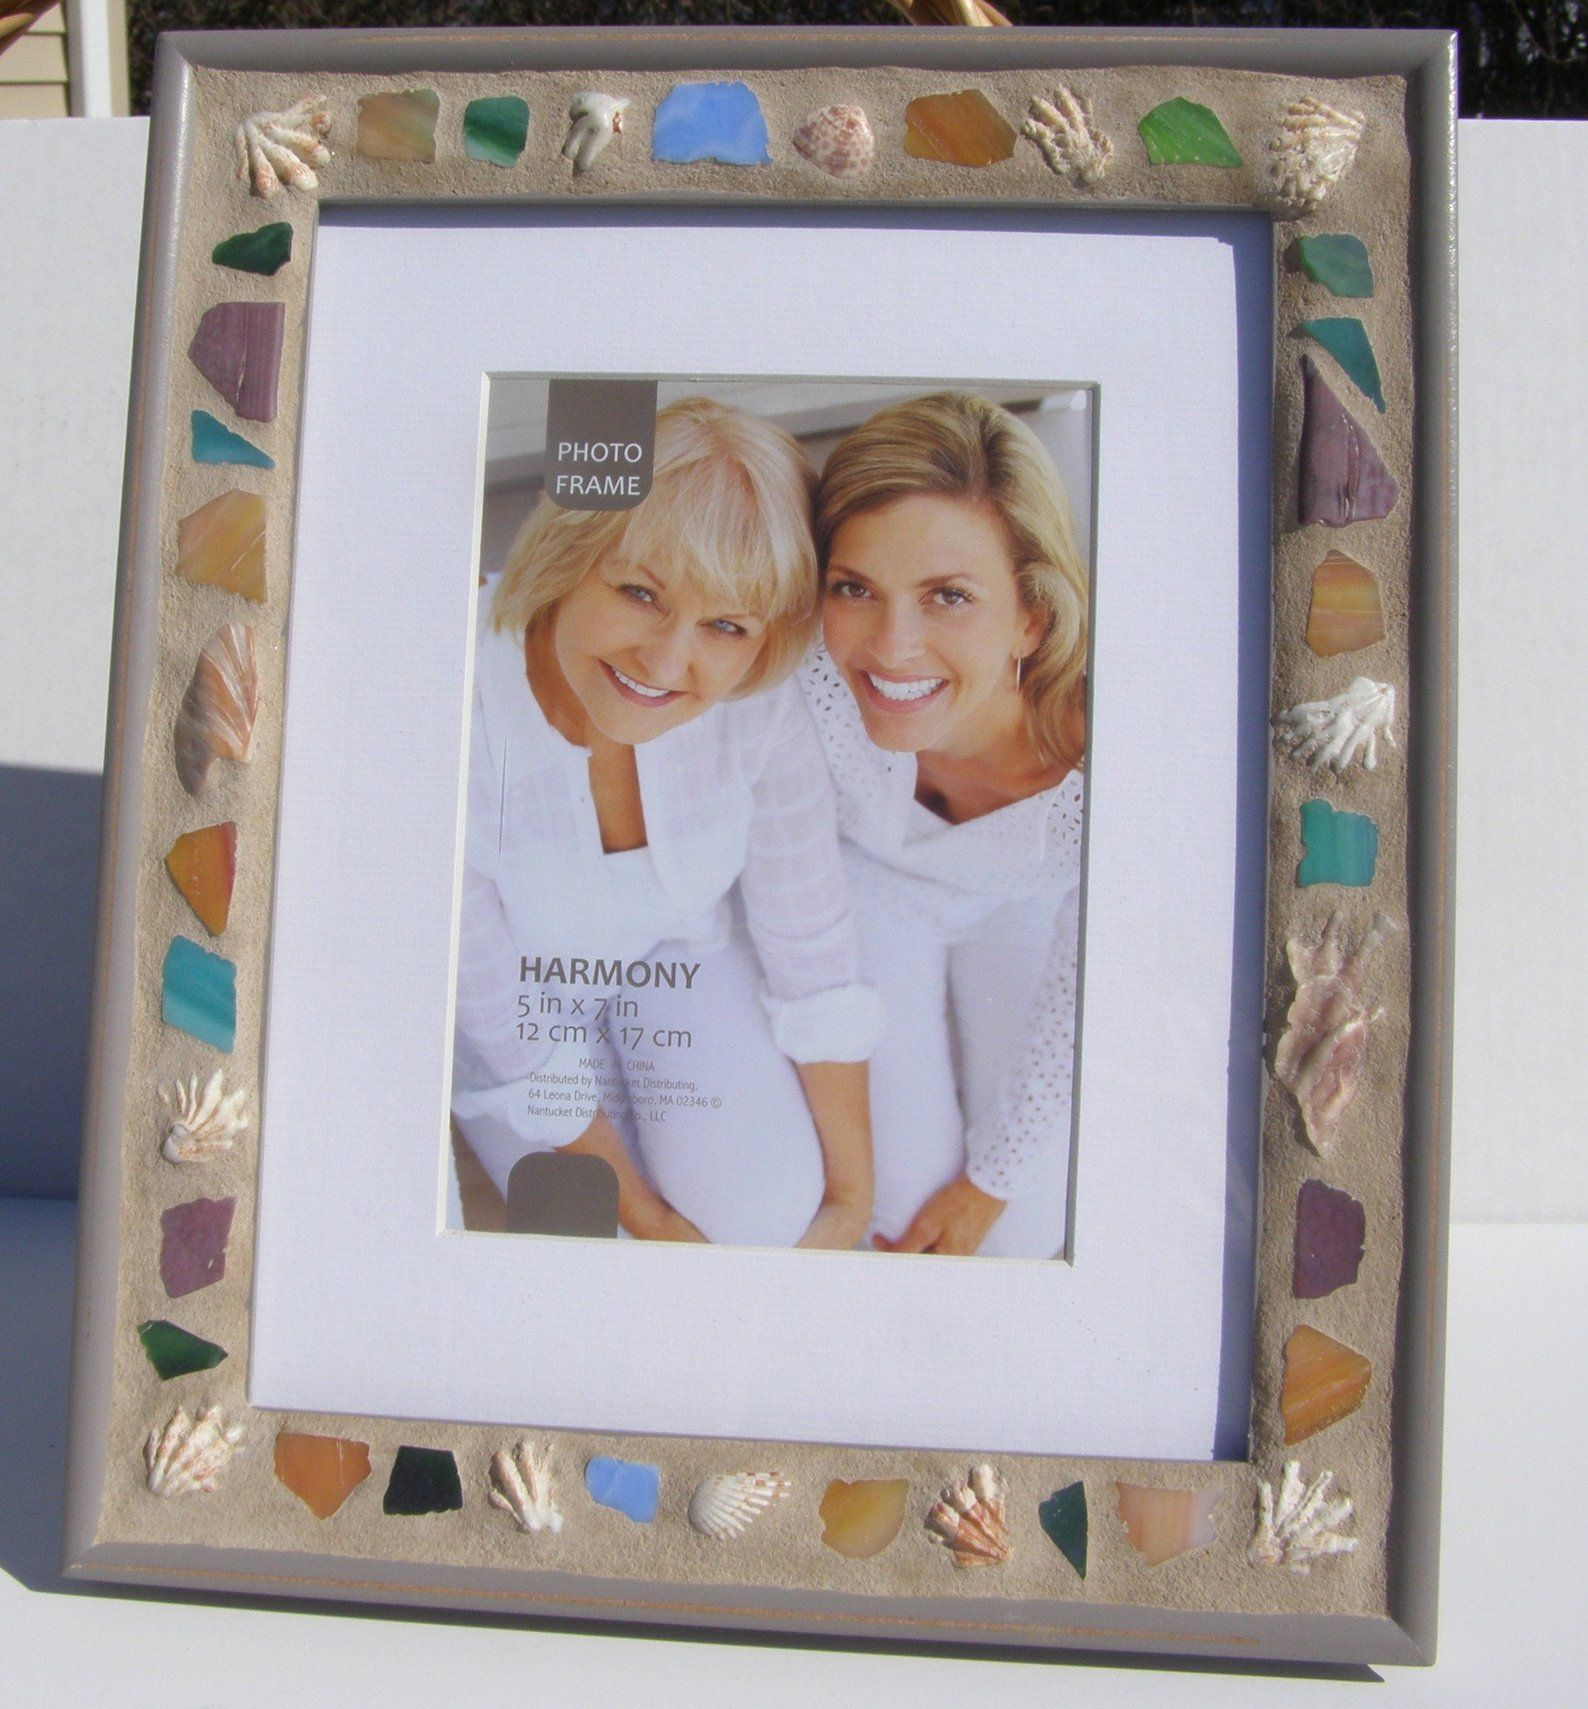 5 X 7 Seashell Mosaic Photo Frame 8 X 10 Picture Frame Etsy Photoframe Mosaicphotoframe Mosaisdesign Photo Mosaic Photo Frame Frame